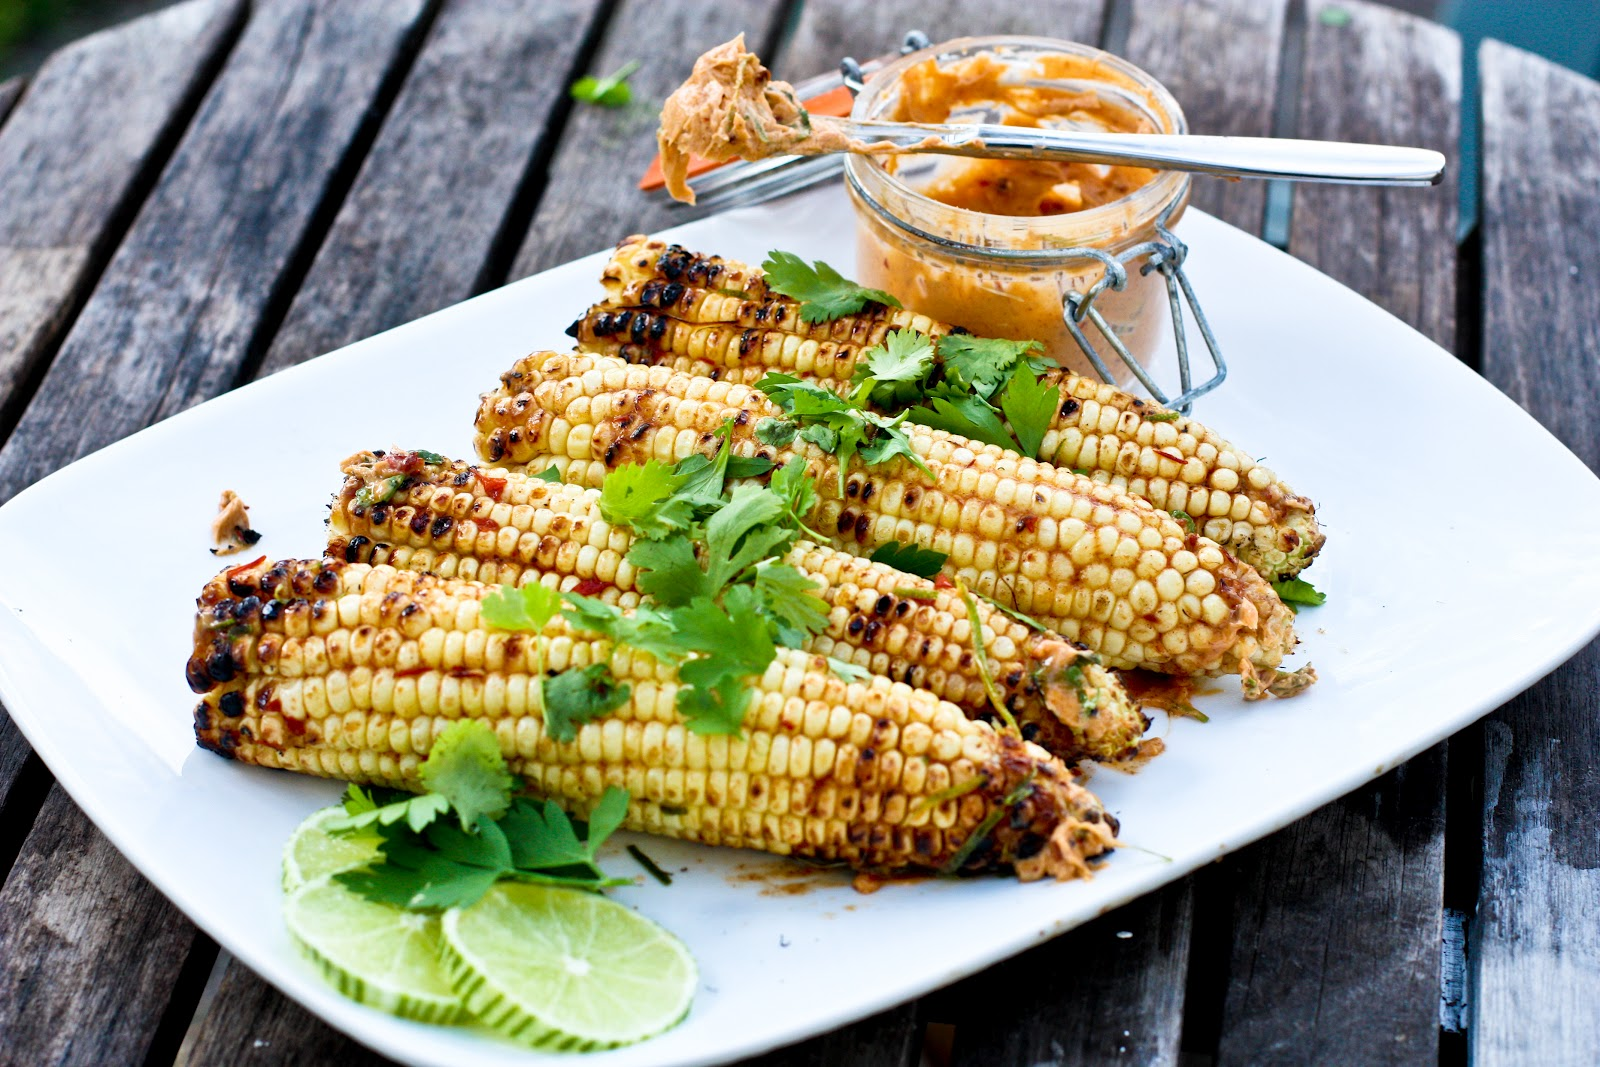 Grilled Corn with Chipotle, Lime and Cilantro